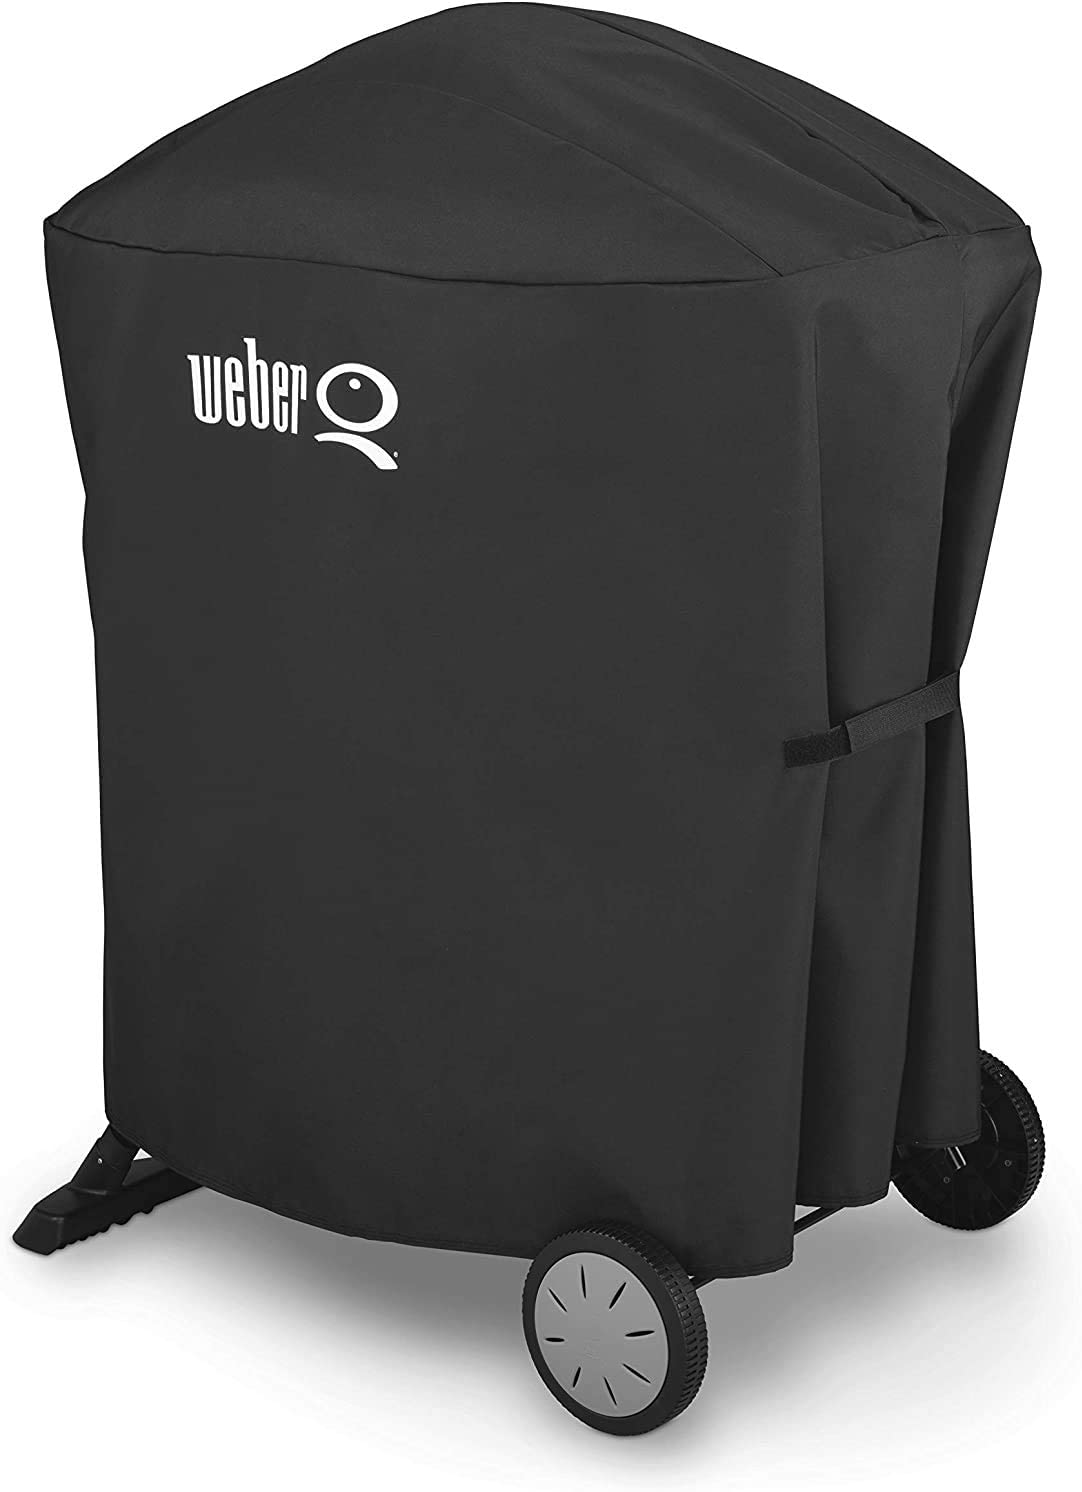 Grill Cover 7113 for Weber Q 100/1000 and Q 200/2000 Grills with The Q Portable cart,(32.28 x 17.32 x 35.04 inches)